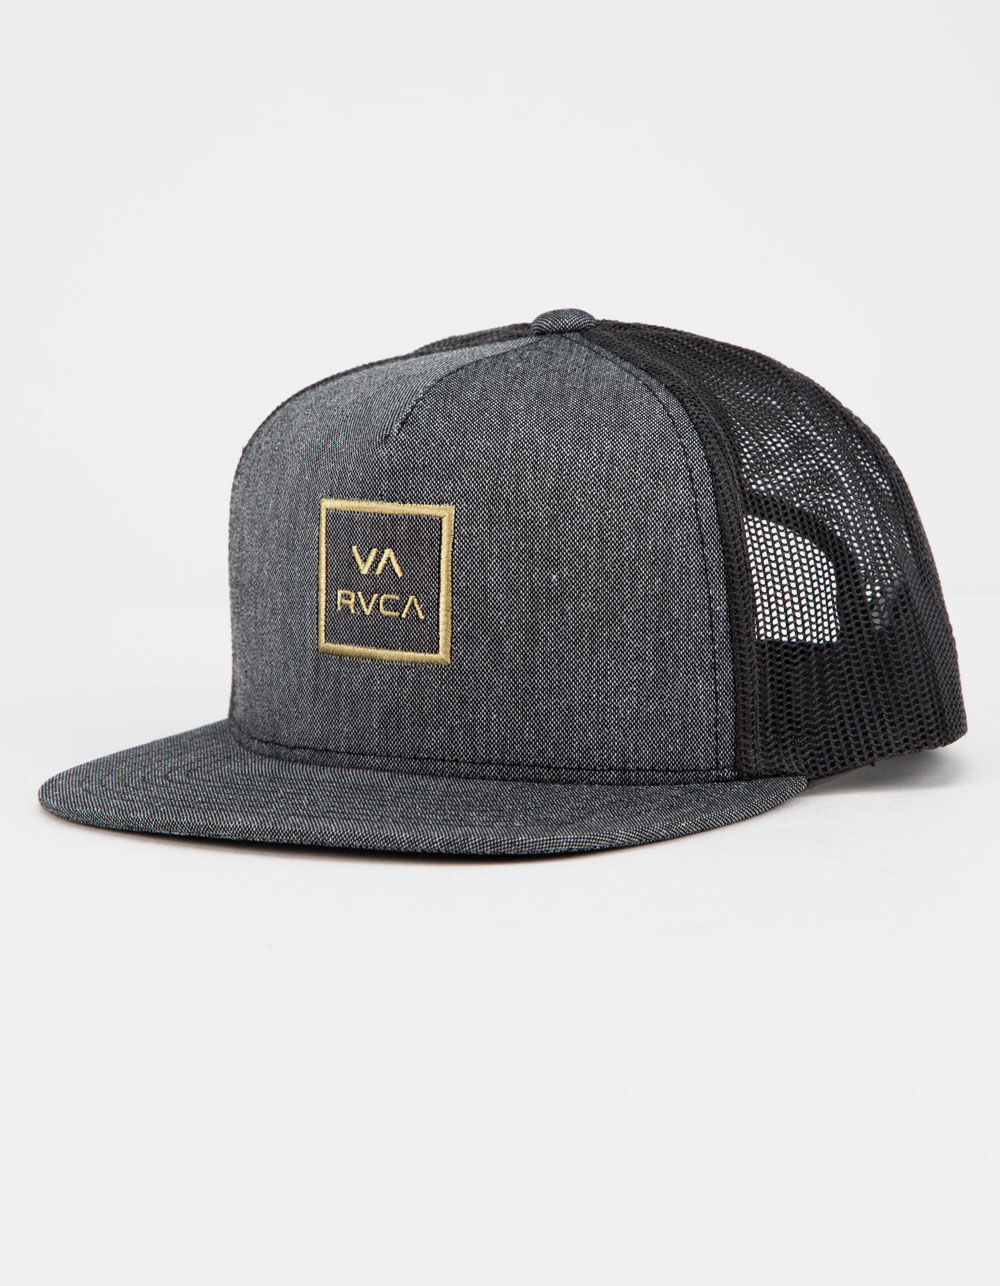 RVCA All The Way Boys Trucker Hat